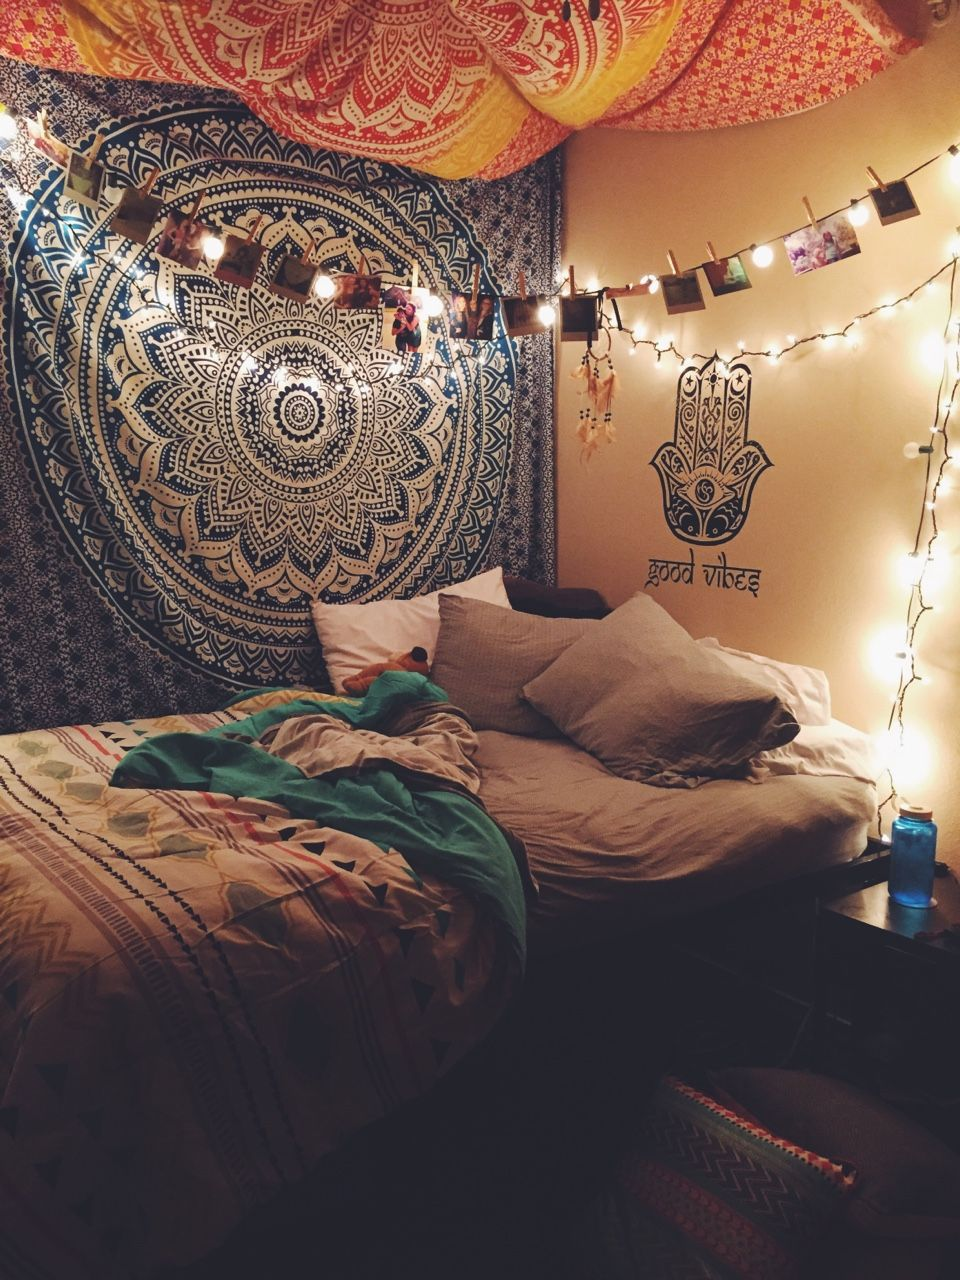 Tapestry Bedroom Cosy Inspiration How To Get Your College Bedroom Winter Ready A